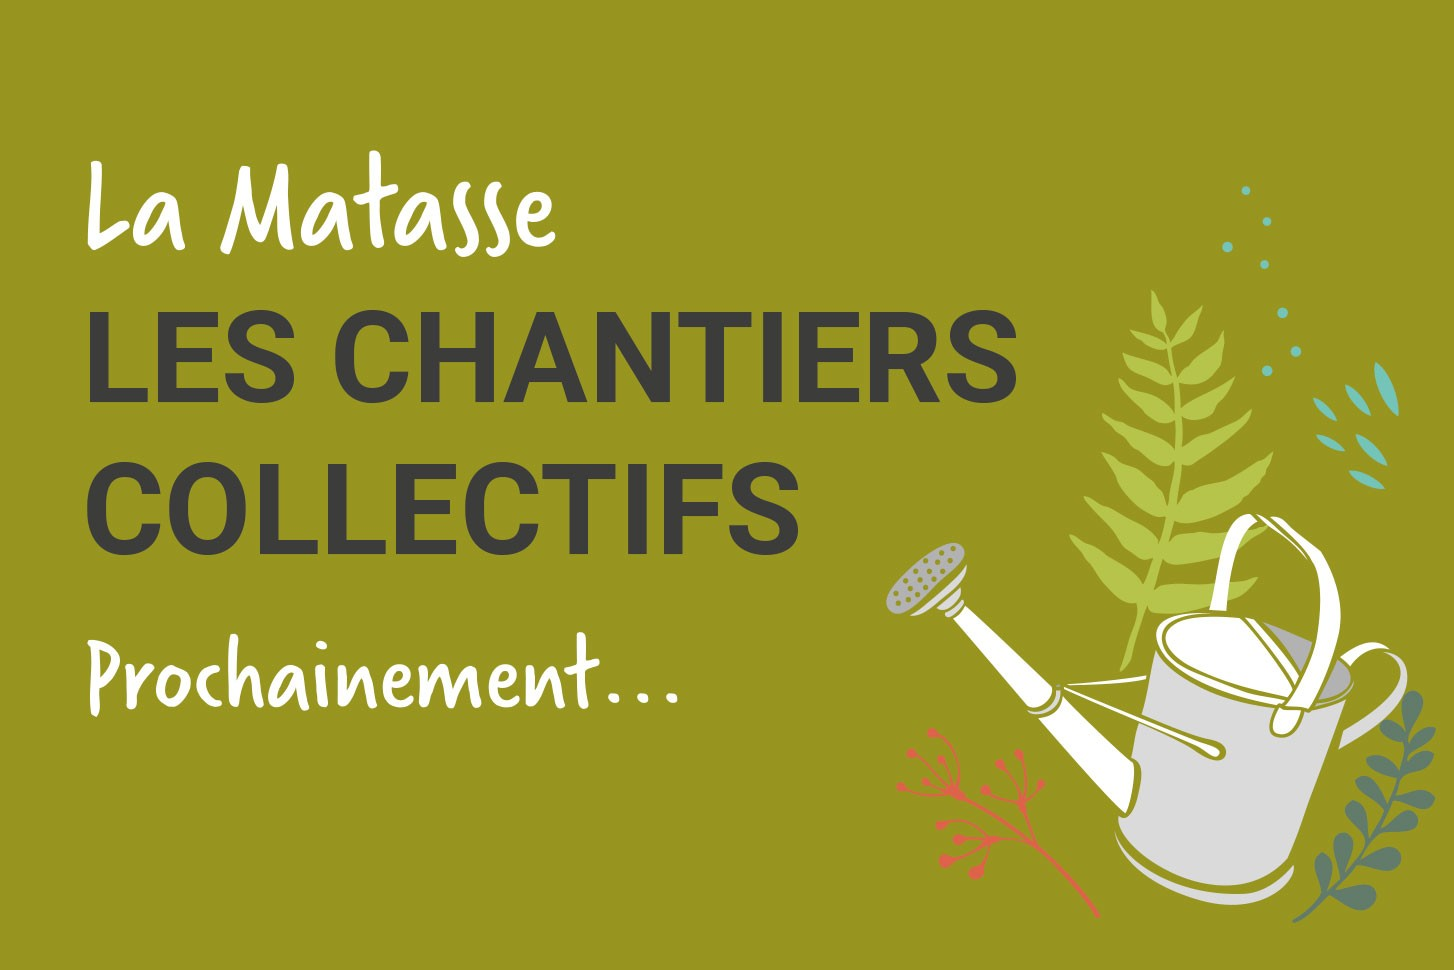 Chantiers collectifs